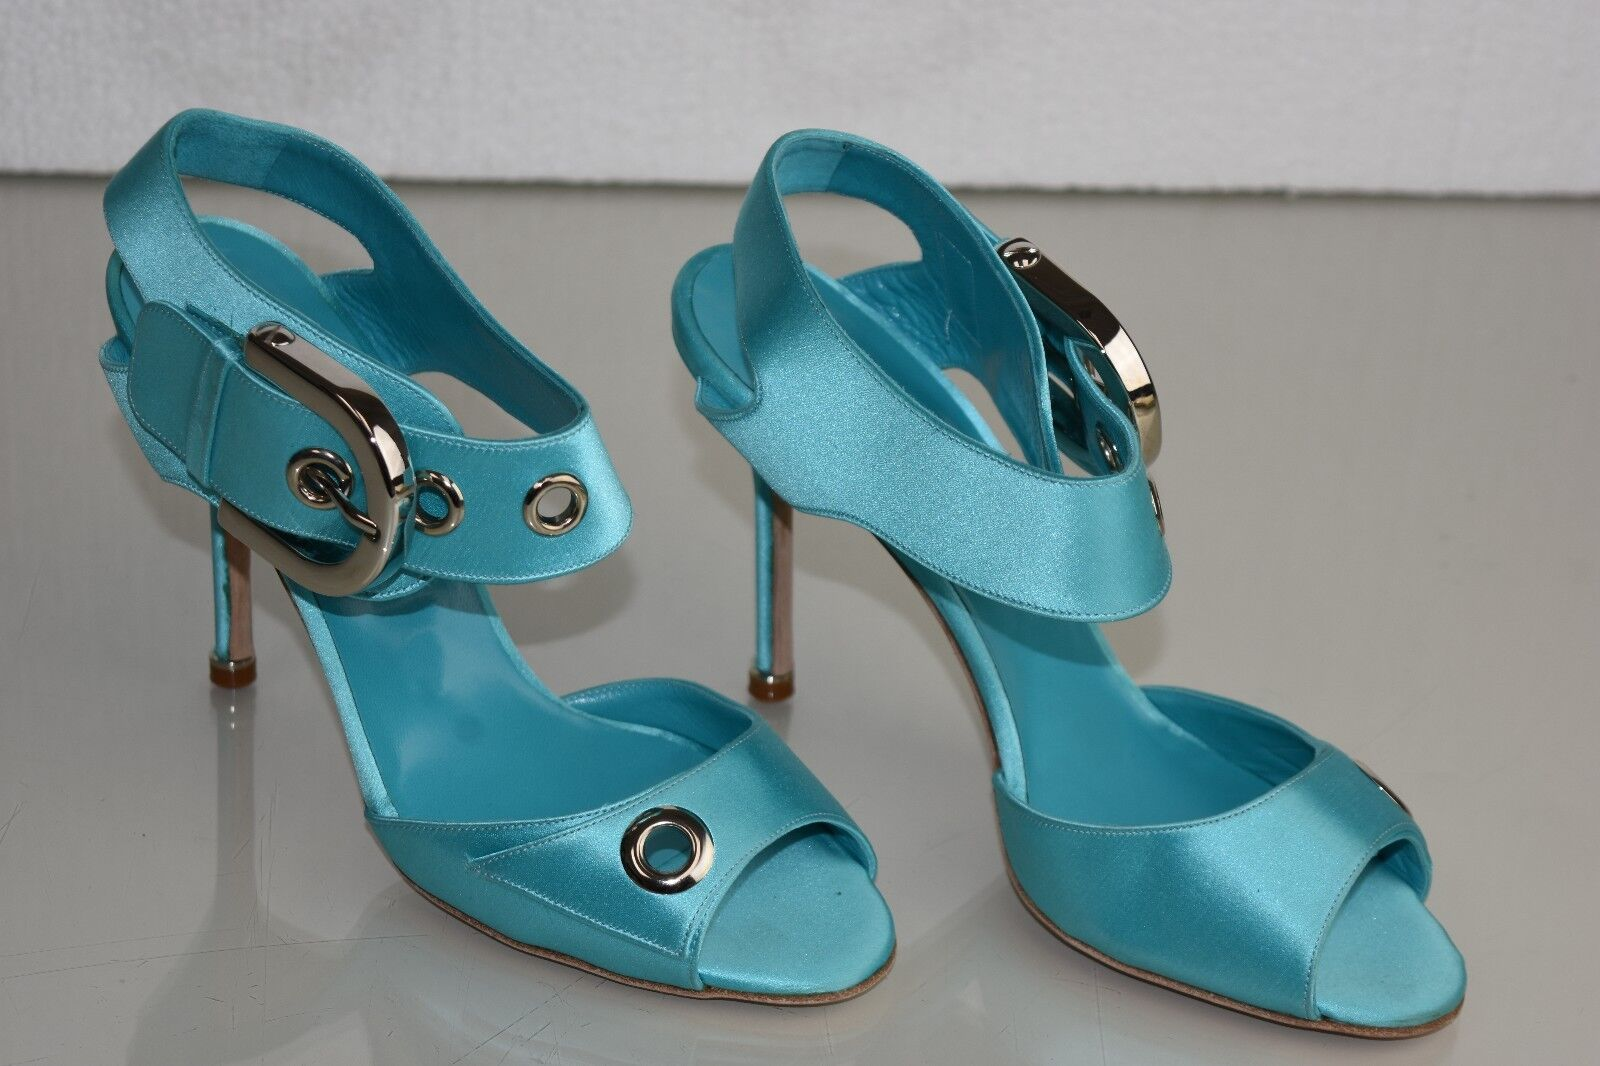 1165 New Manolo Blahnik Turquoise Satin Silver Buckle Sandals Heels shoes 39